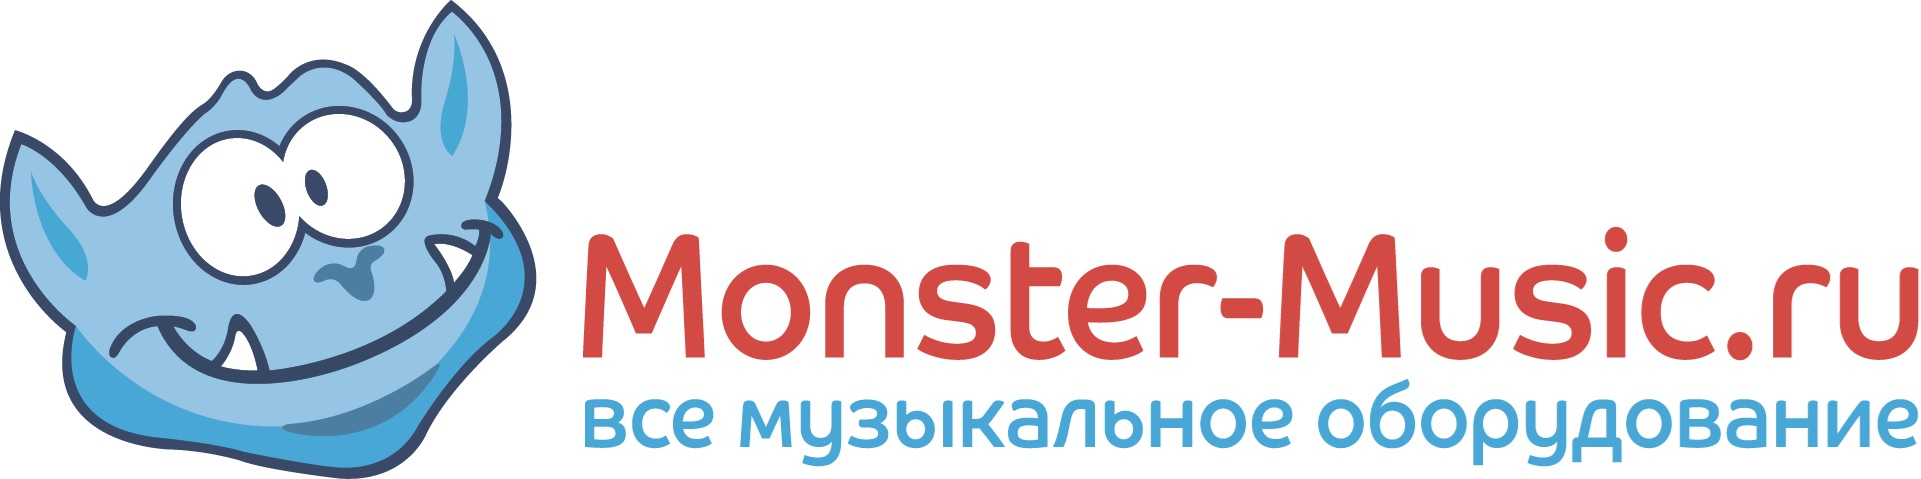 Магазин Monster-Music